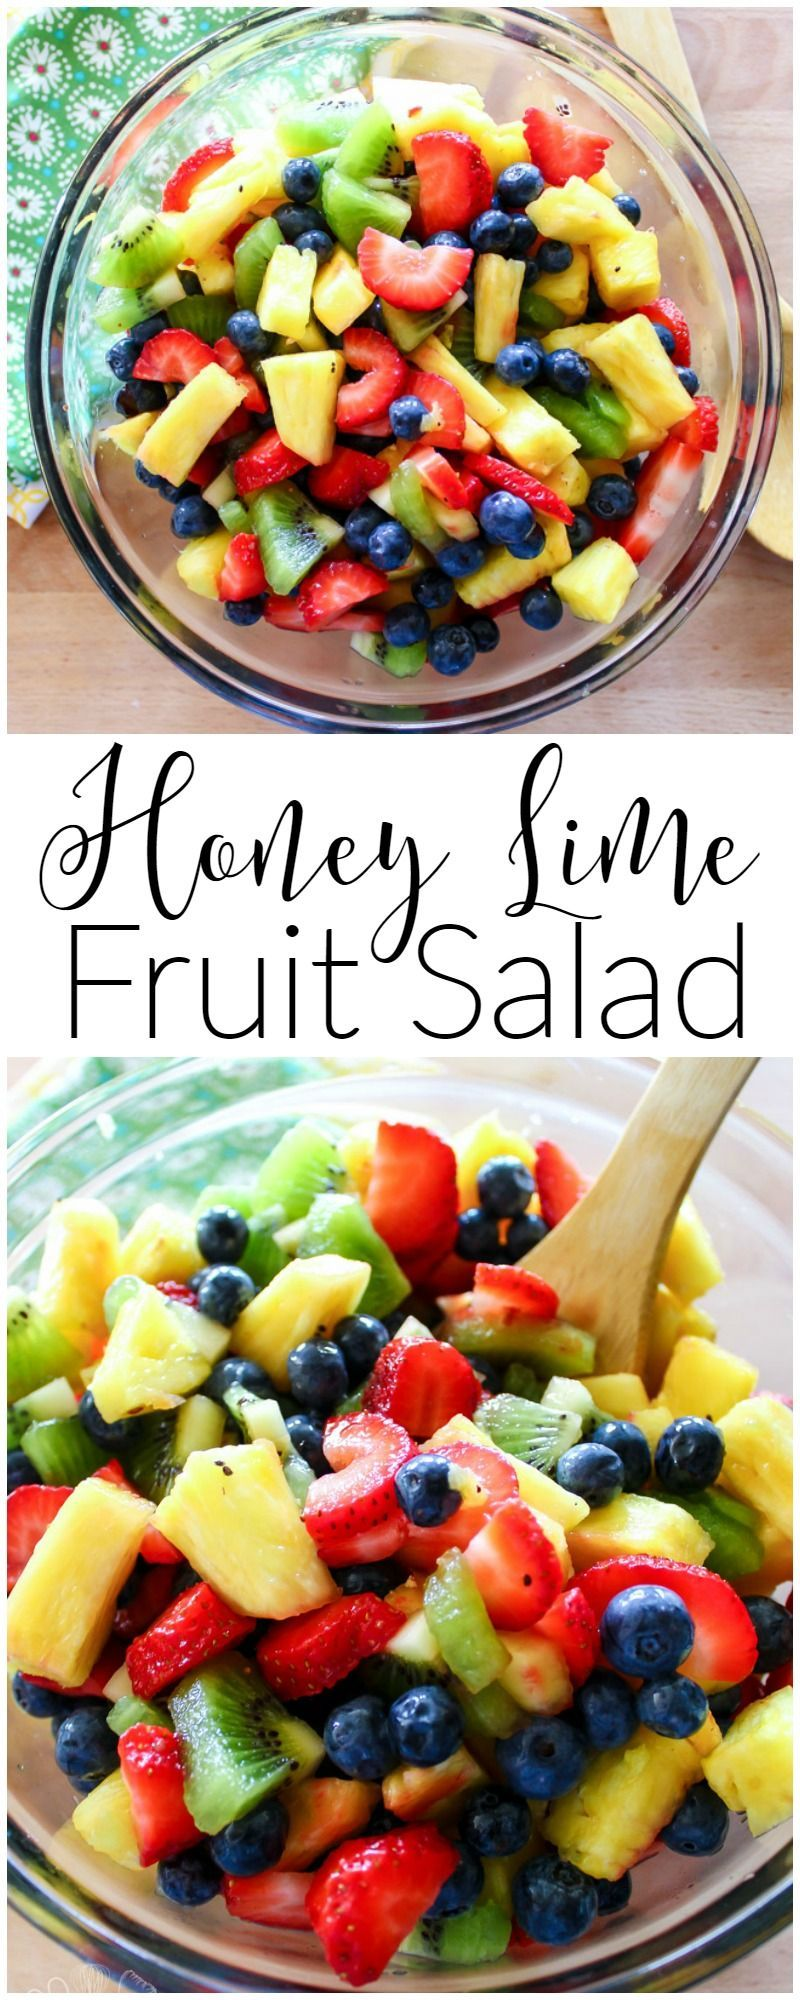 Honey Lime Fruit Salad A rainbow blend of fruit, combined with a sweet and tart dressing makes this honey lime fruit salad a sure to be hit at any Summer cookout Lime Fruit Salad A rainbow blend of fruit, combined with a sweet and tart dressing makes this honey lime fruit salad a sure to be hit at any Summer cookoutA rainbow blend of fruit, combined with a sweet and tart dressing makes this honey lime fruit salad a sure to be hit at any Summer cookout